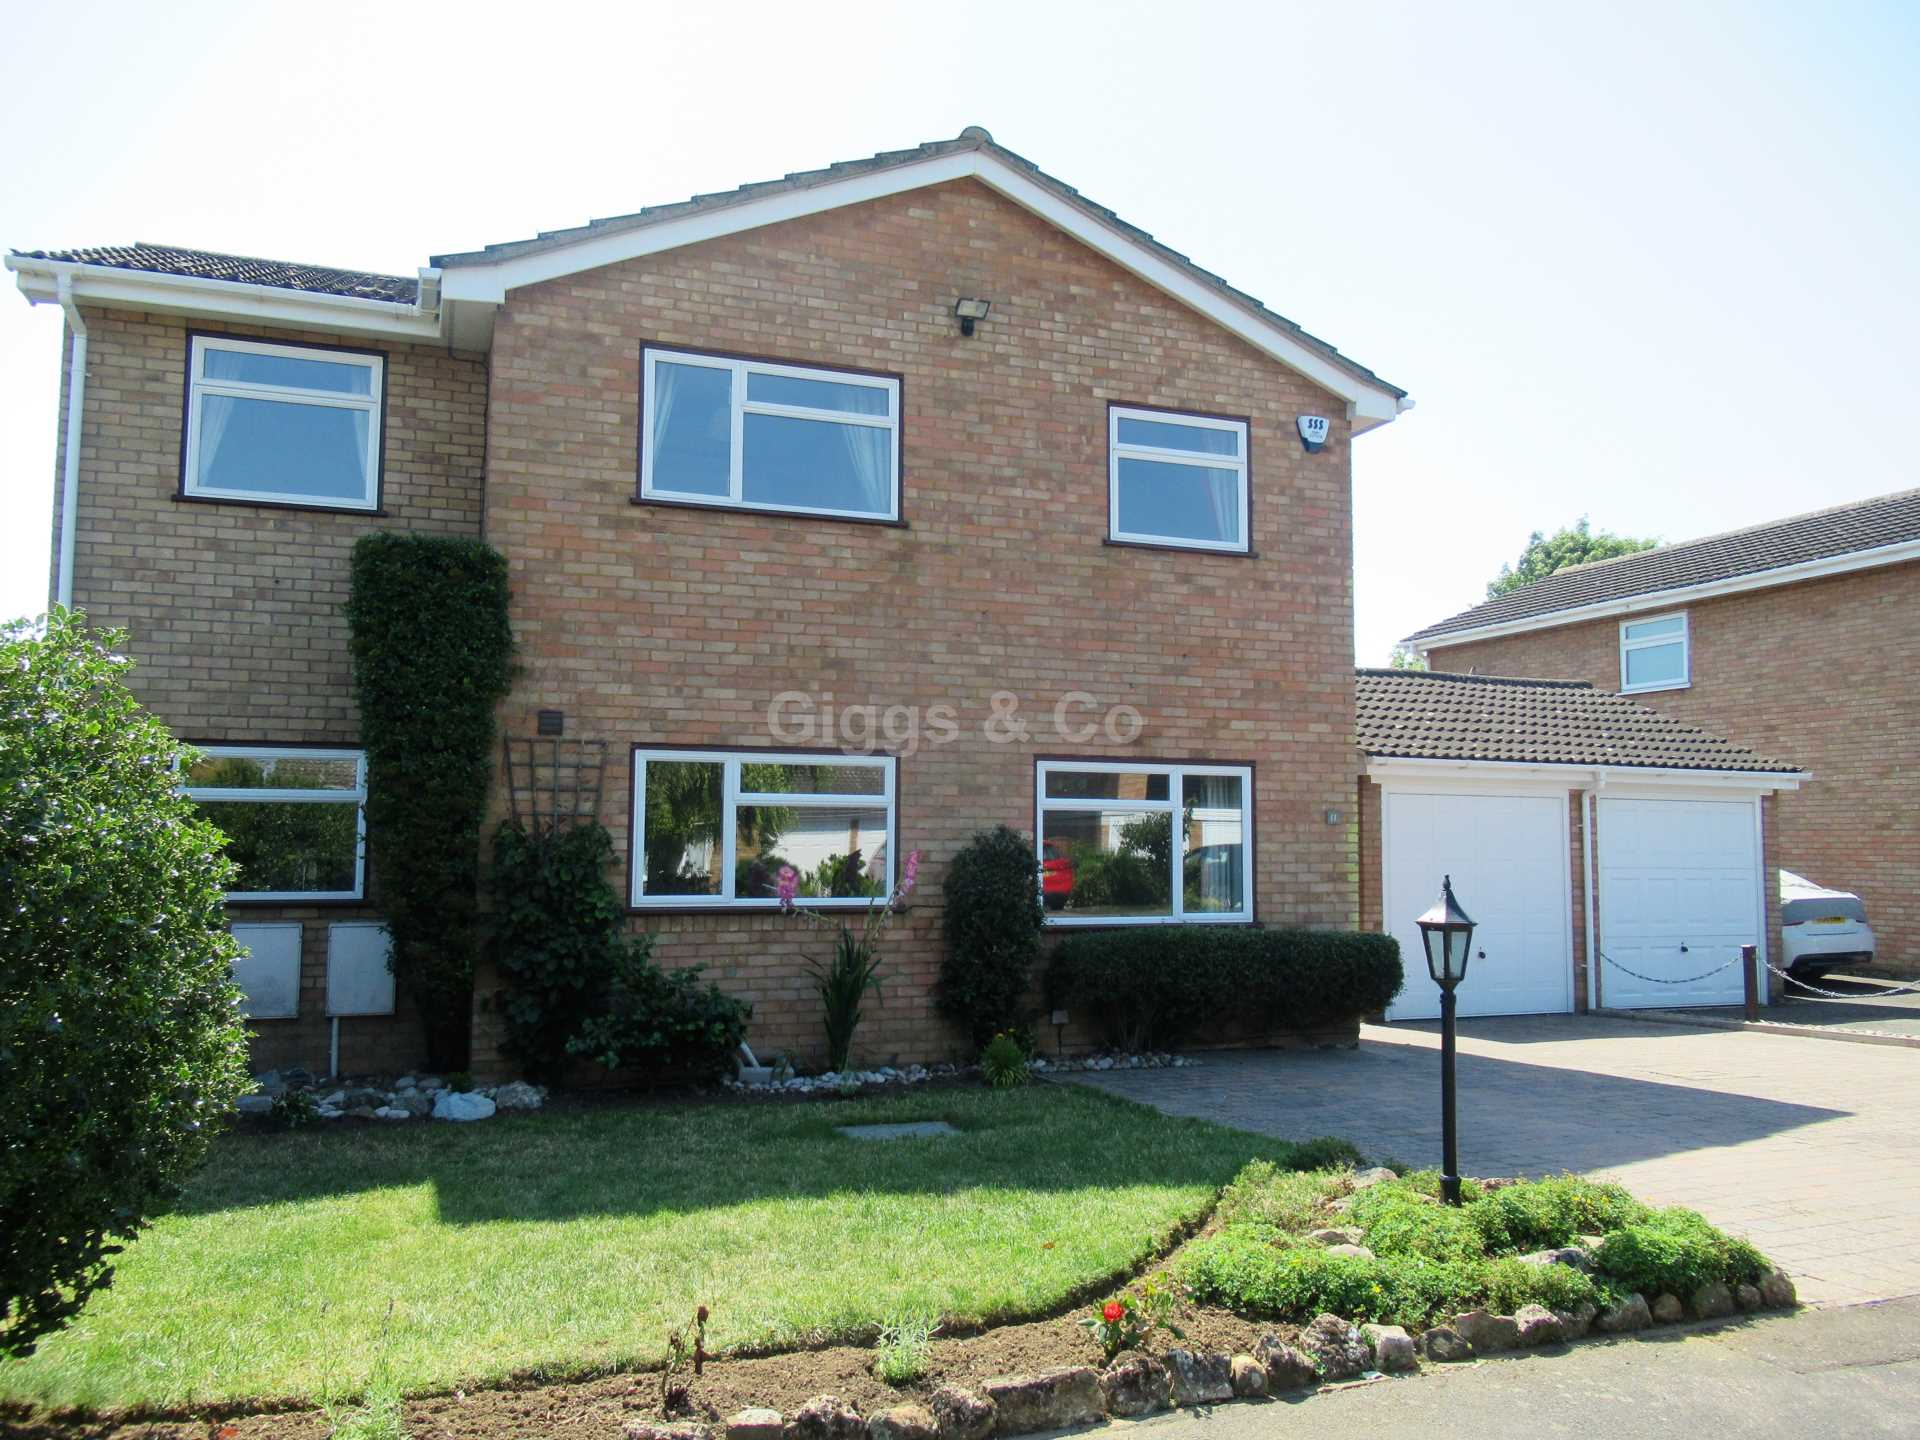 5 bed detached-house to rent in Browning Drive, Eaton Ford, St Neots, PE19